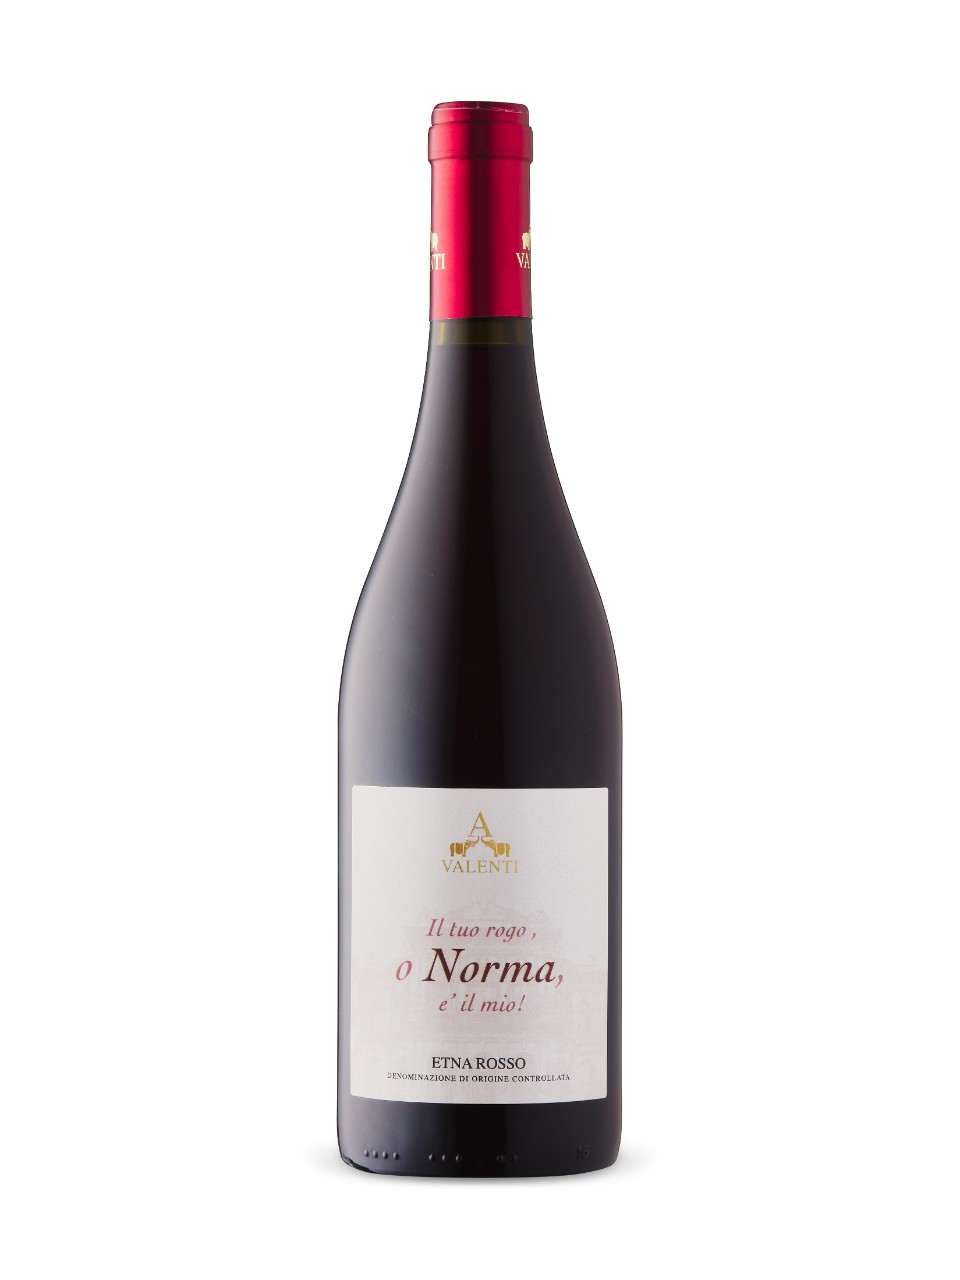 Norma Etna Rosso DOC 2016 from LCBO